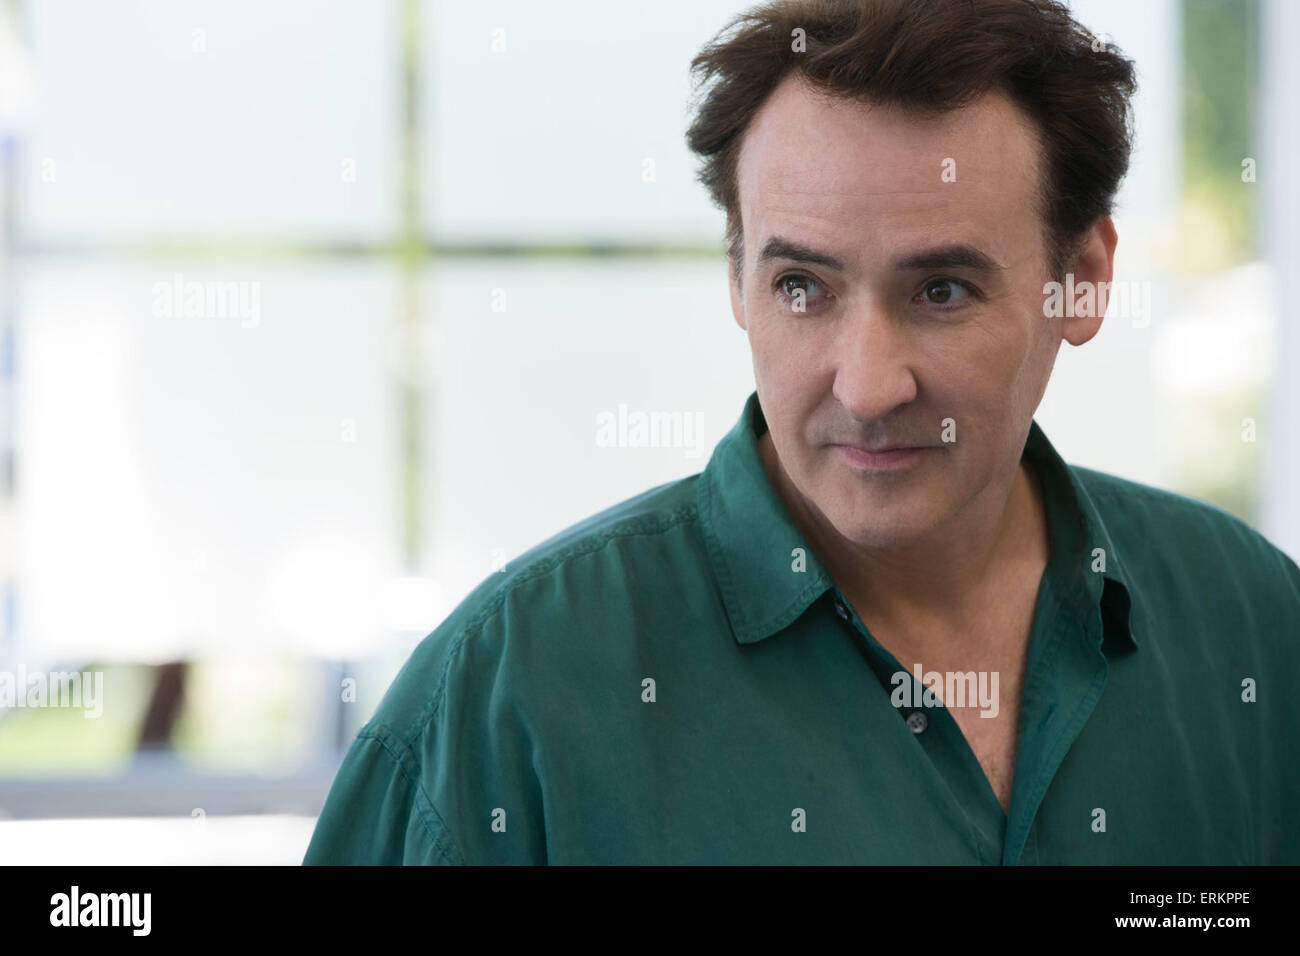 Bill Cusack High Resolution Stock Photography And Images Alamy Bill cusack news, gossip, photos of bill cusack, biography, bill cusack girlfriend list 2016. https www alamy com stock photo love mercy 2014 john cusack bill pohlad dir 83413526 html